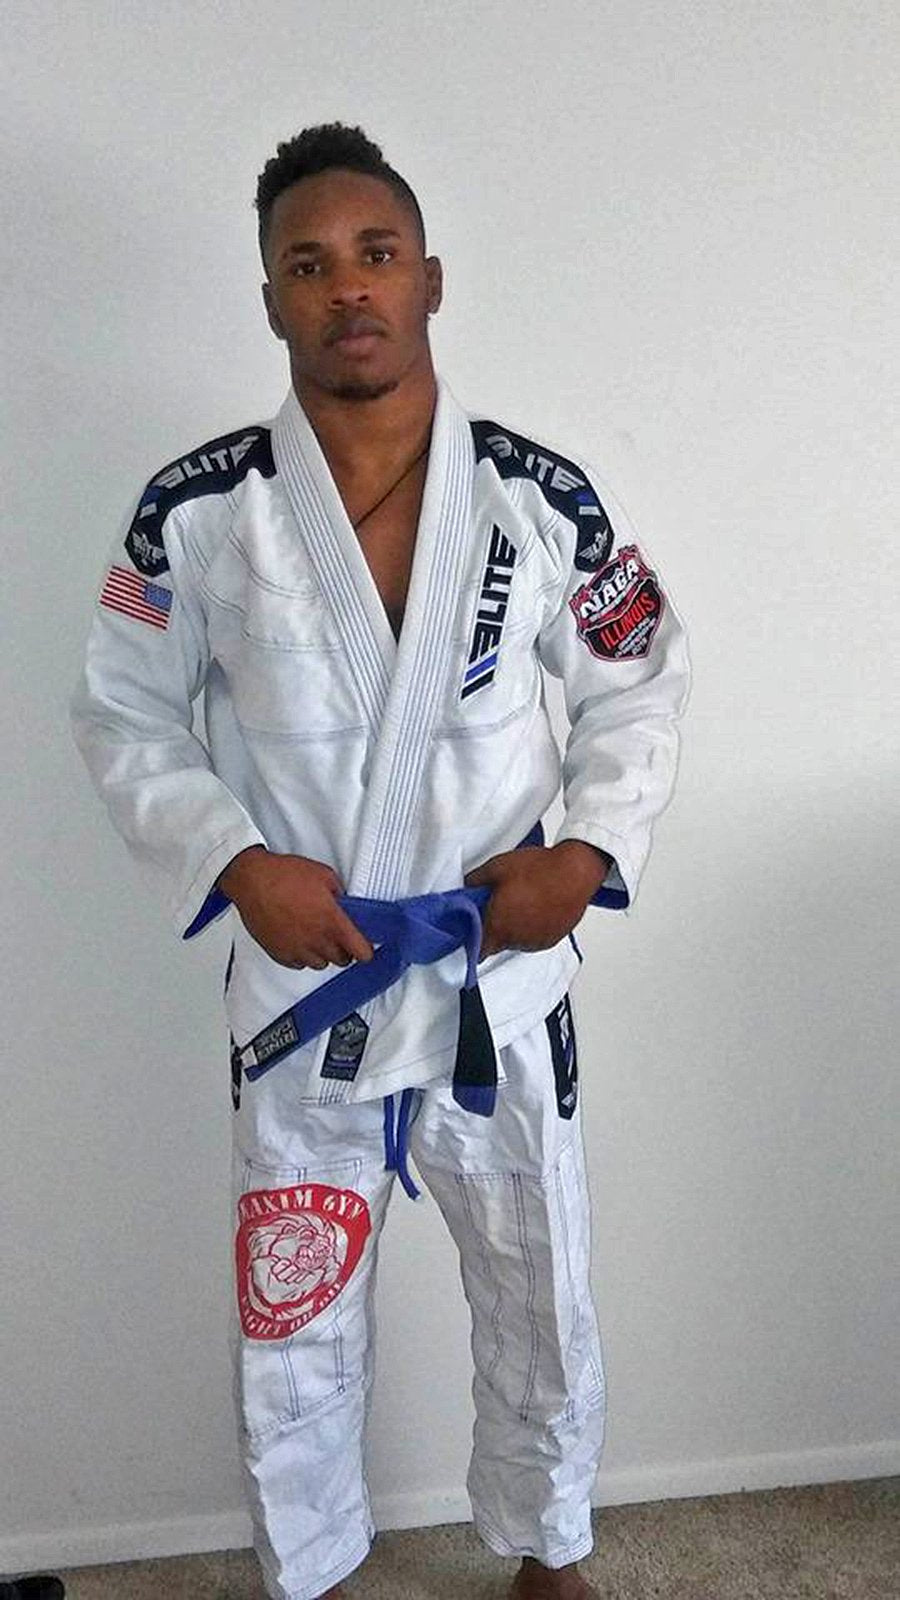 Elite Sports Team Elite Bjj Fighter Maltese Rico Tally  Image1